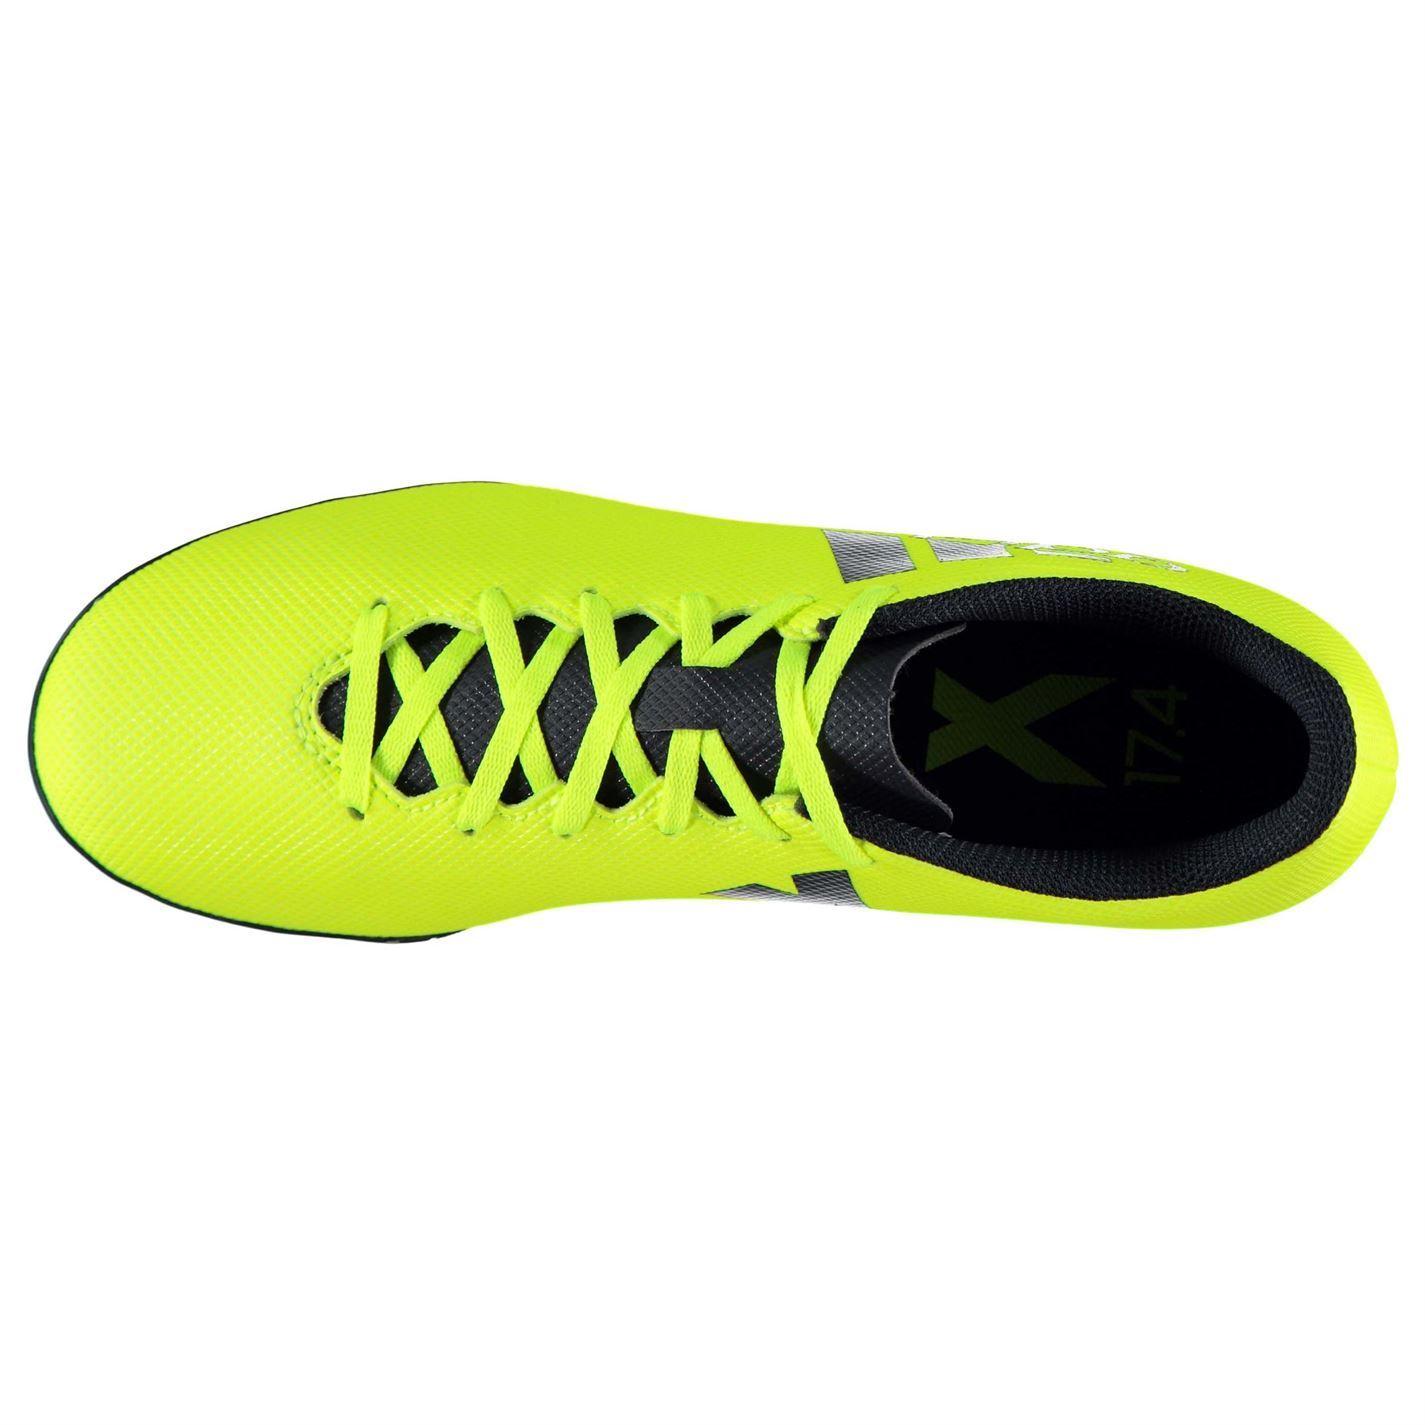 ca00a25de ... adidas X 17.4 Astro Turf Football Trainers Mens Yellow Ink Soccer Shoes  Sneakers